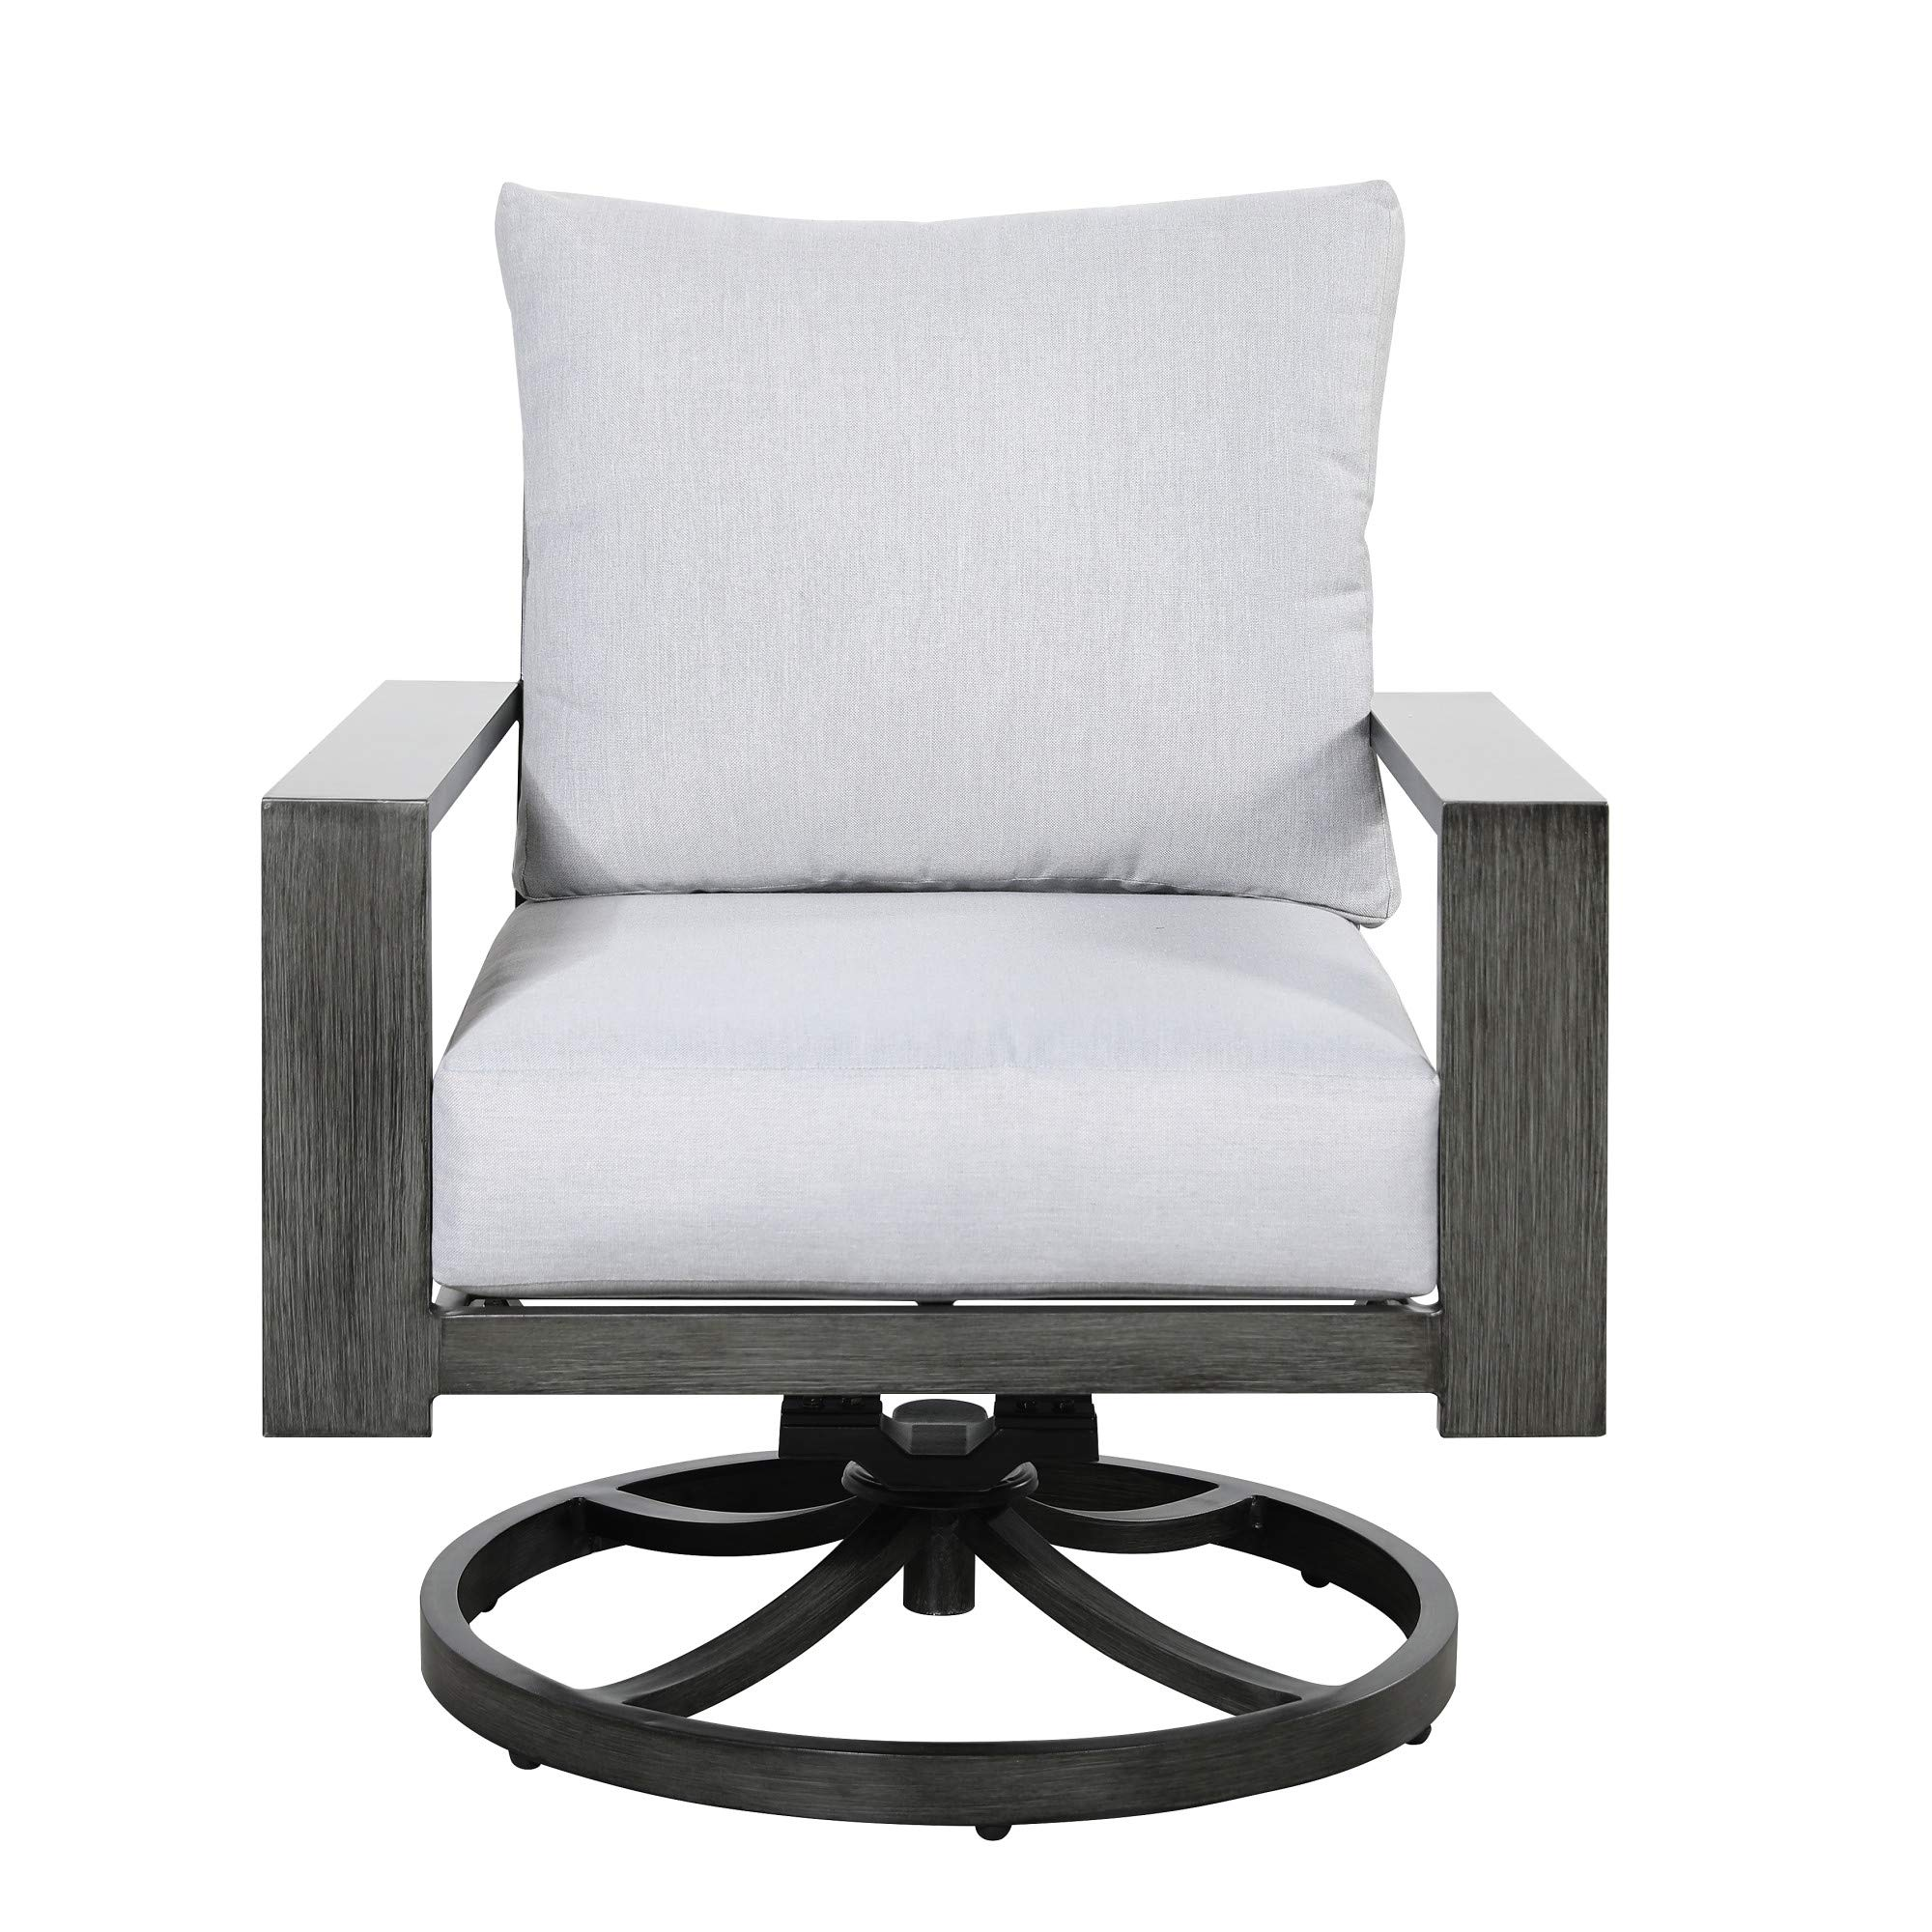 Roscoe Outdoor Swivel Rocker Lounge Chair in Stone White and Deep Gray  with Comfortable Cushions And Durable Materials, by Artum Hill